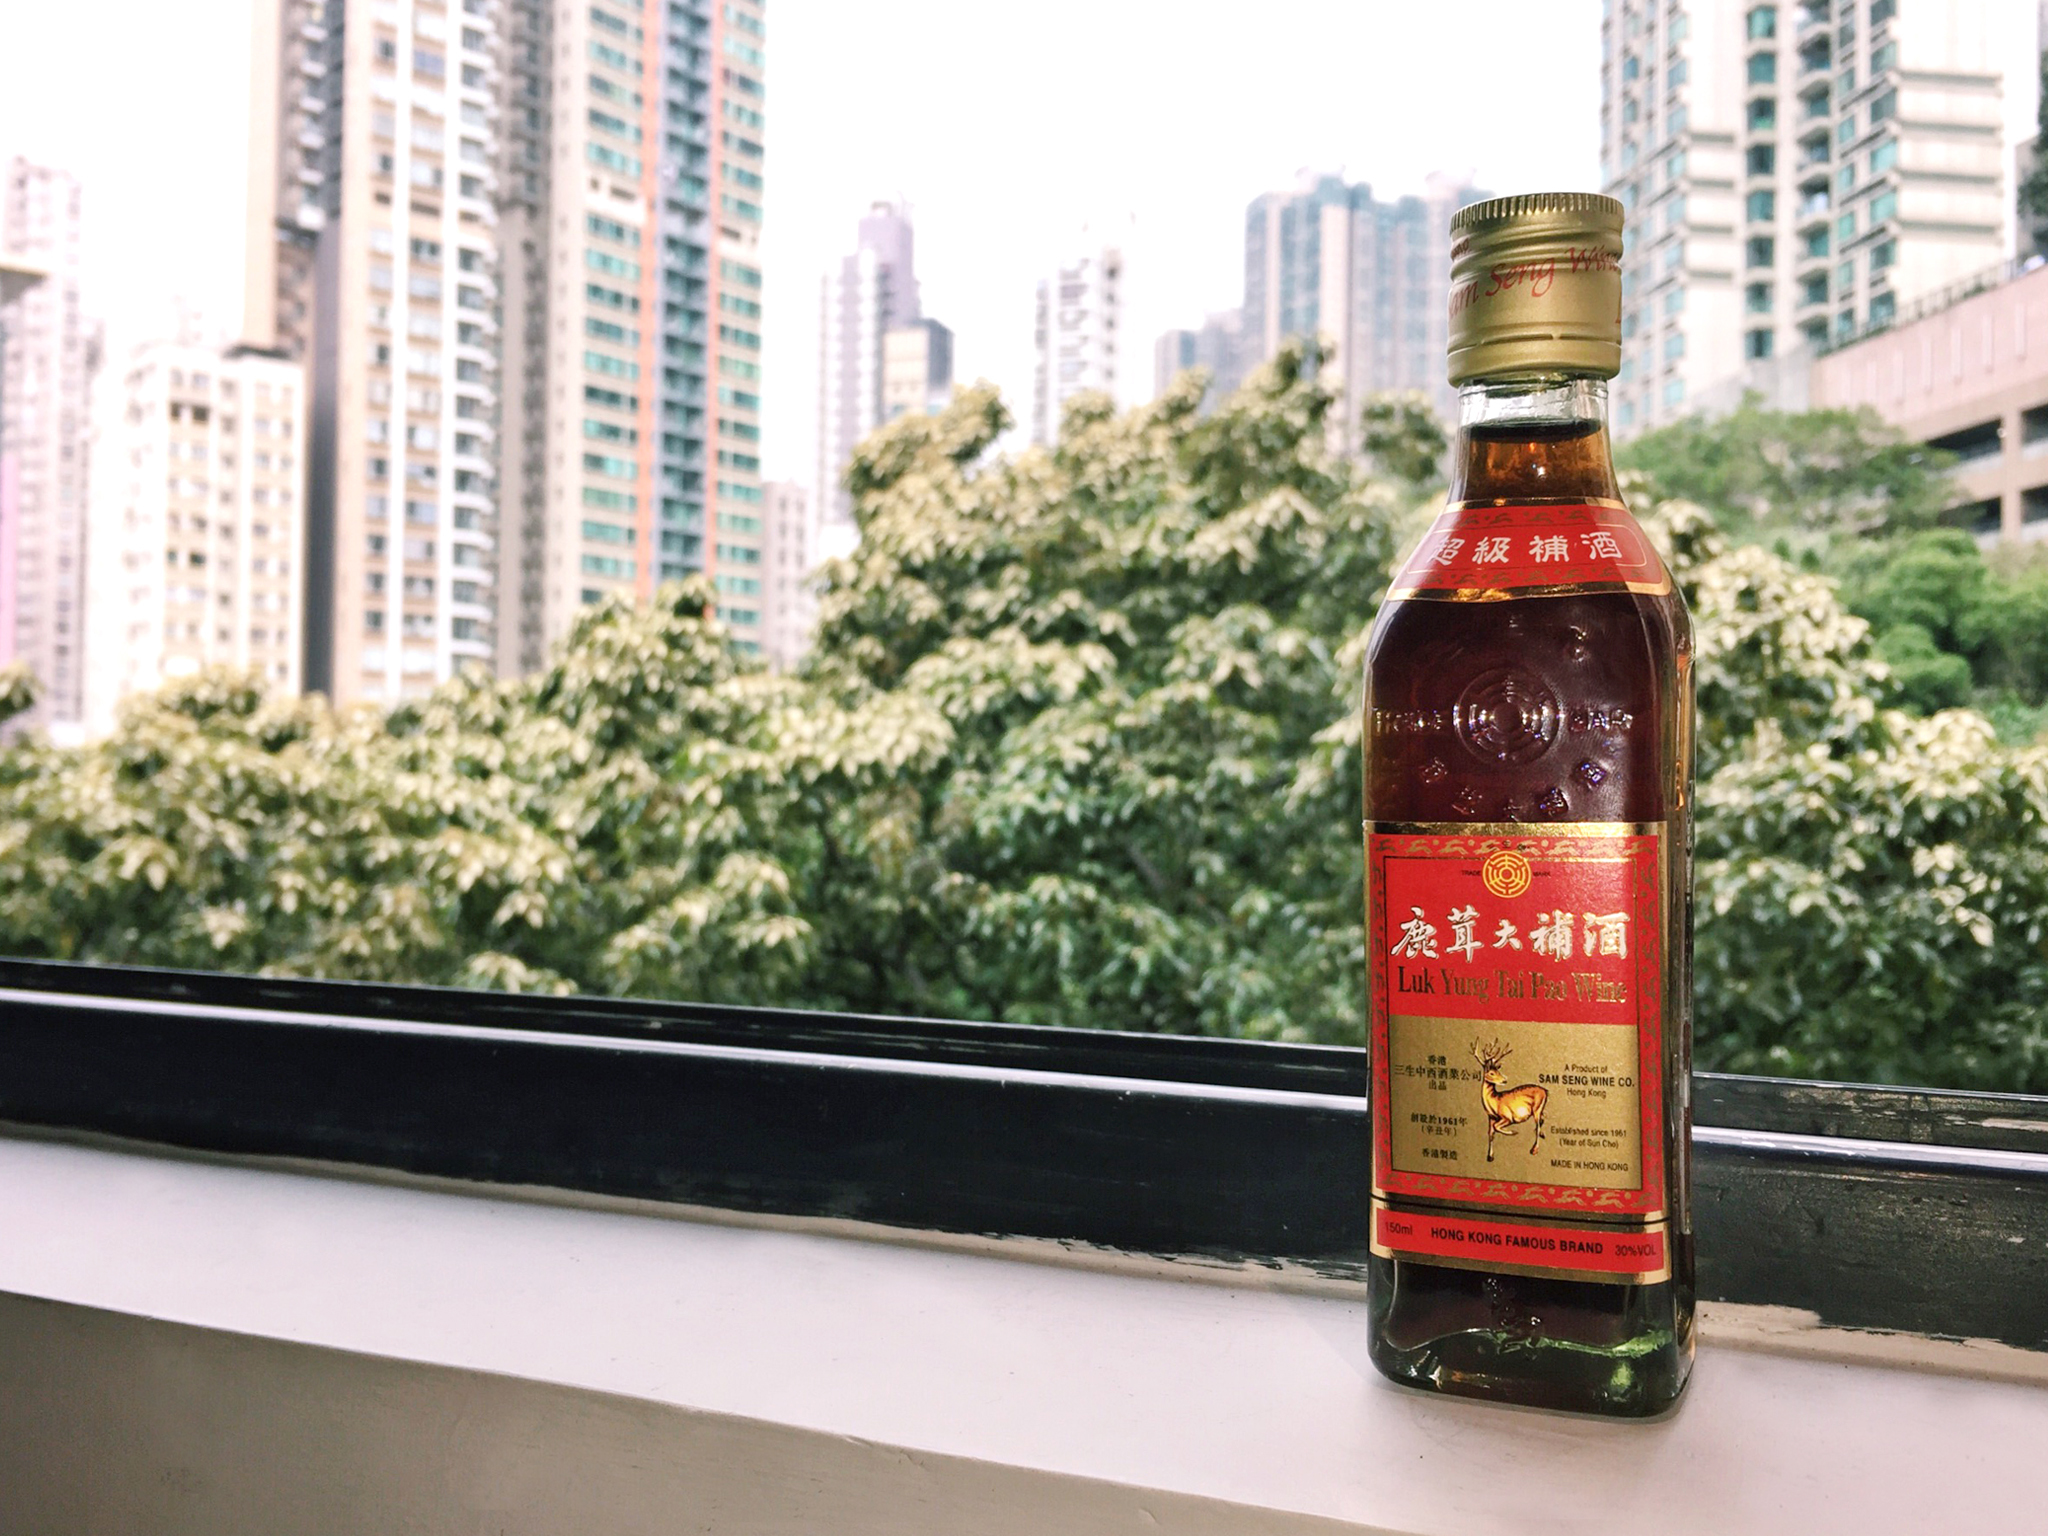 Wellcome to Hong Kong – Luk Yung Tai Pao Wine